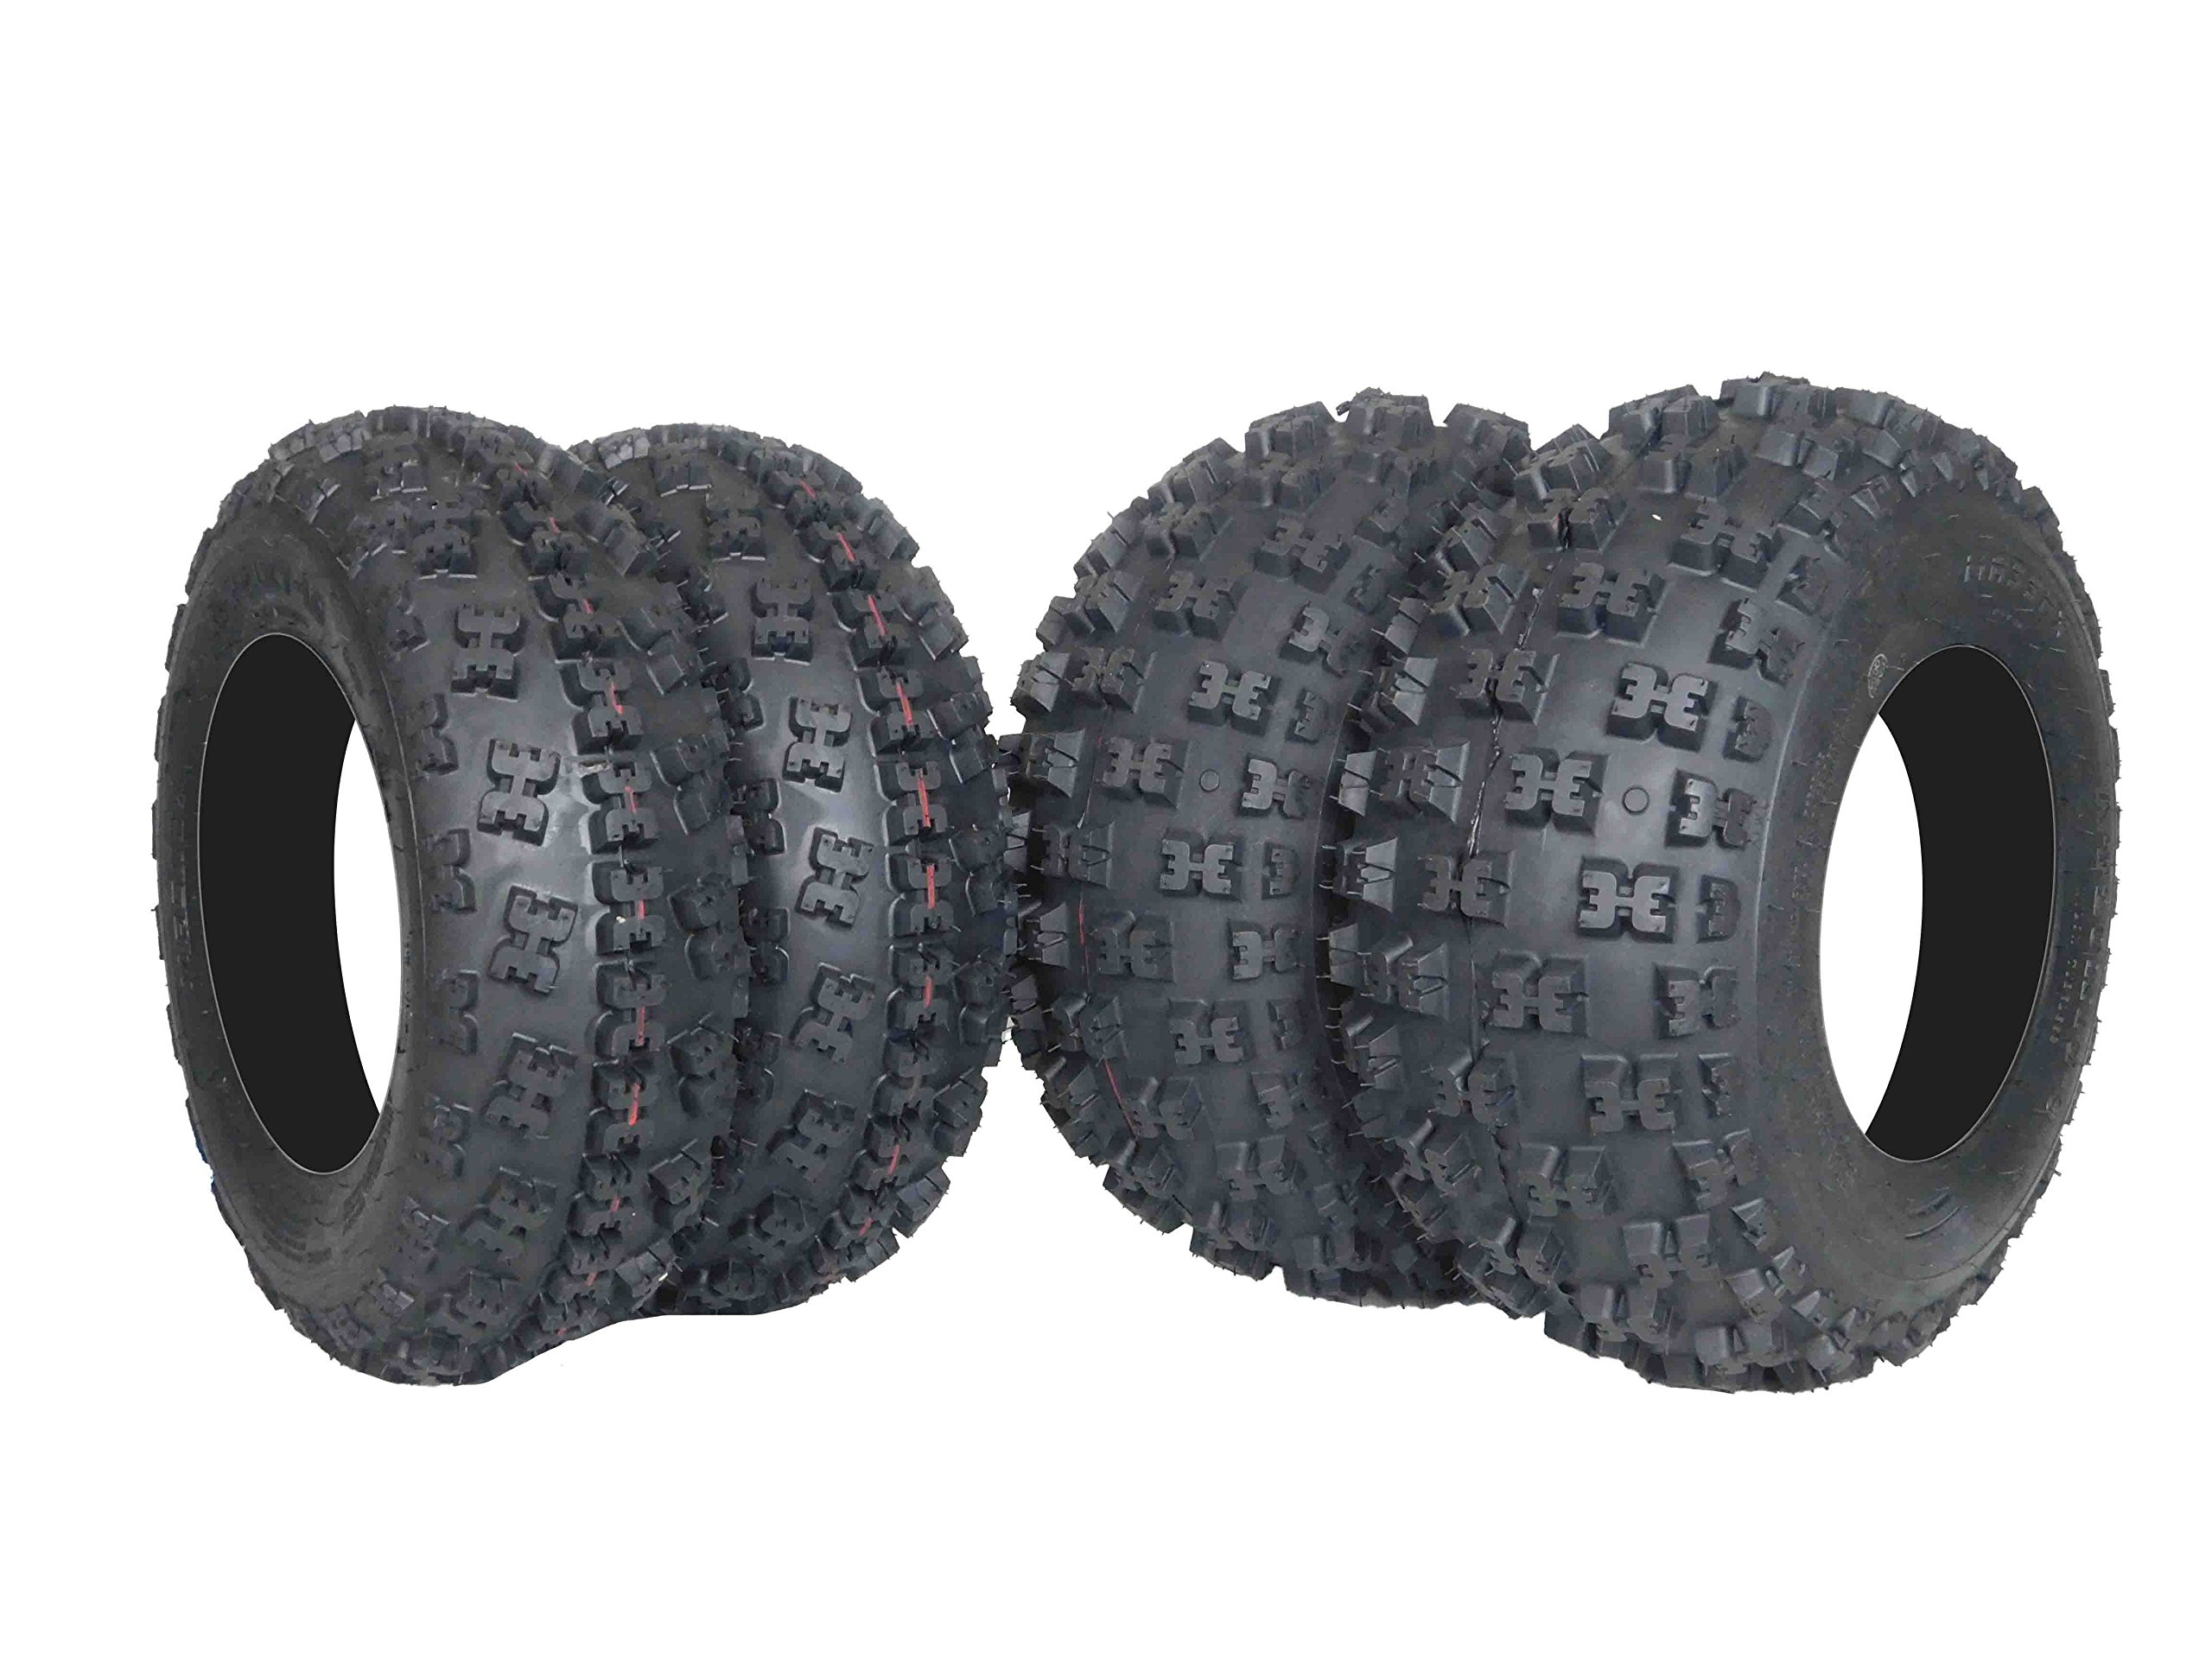 New MASSFX ATV Sport Quad Tires 21X7-10 20X10-9 6 Ply Dual Compound Front Rear For Yamaha Raptor Banshee Honda 400ex 450r 660 700 400 450 350 250 (Four Pack two Front 21x7-10 and Two Rear20x10-9 6) by MassFx